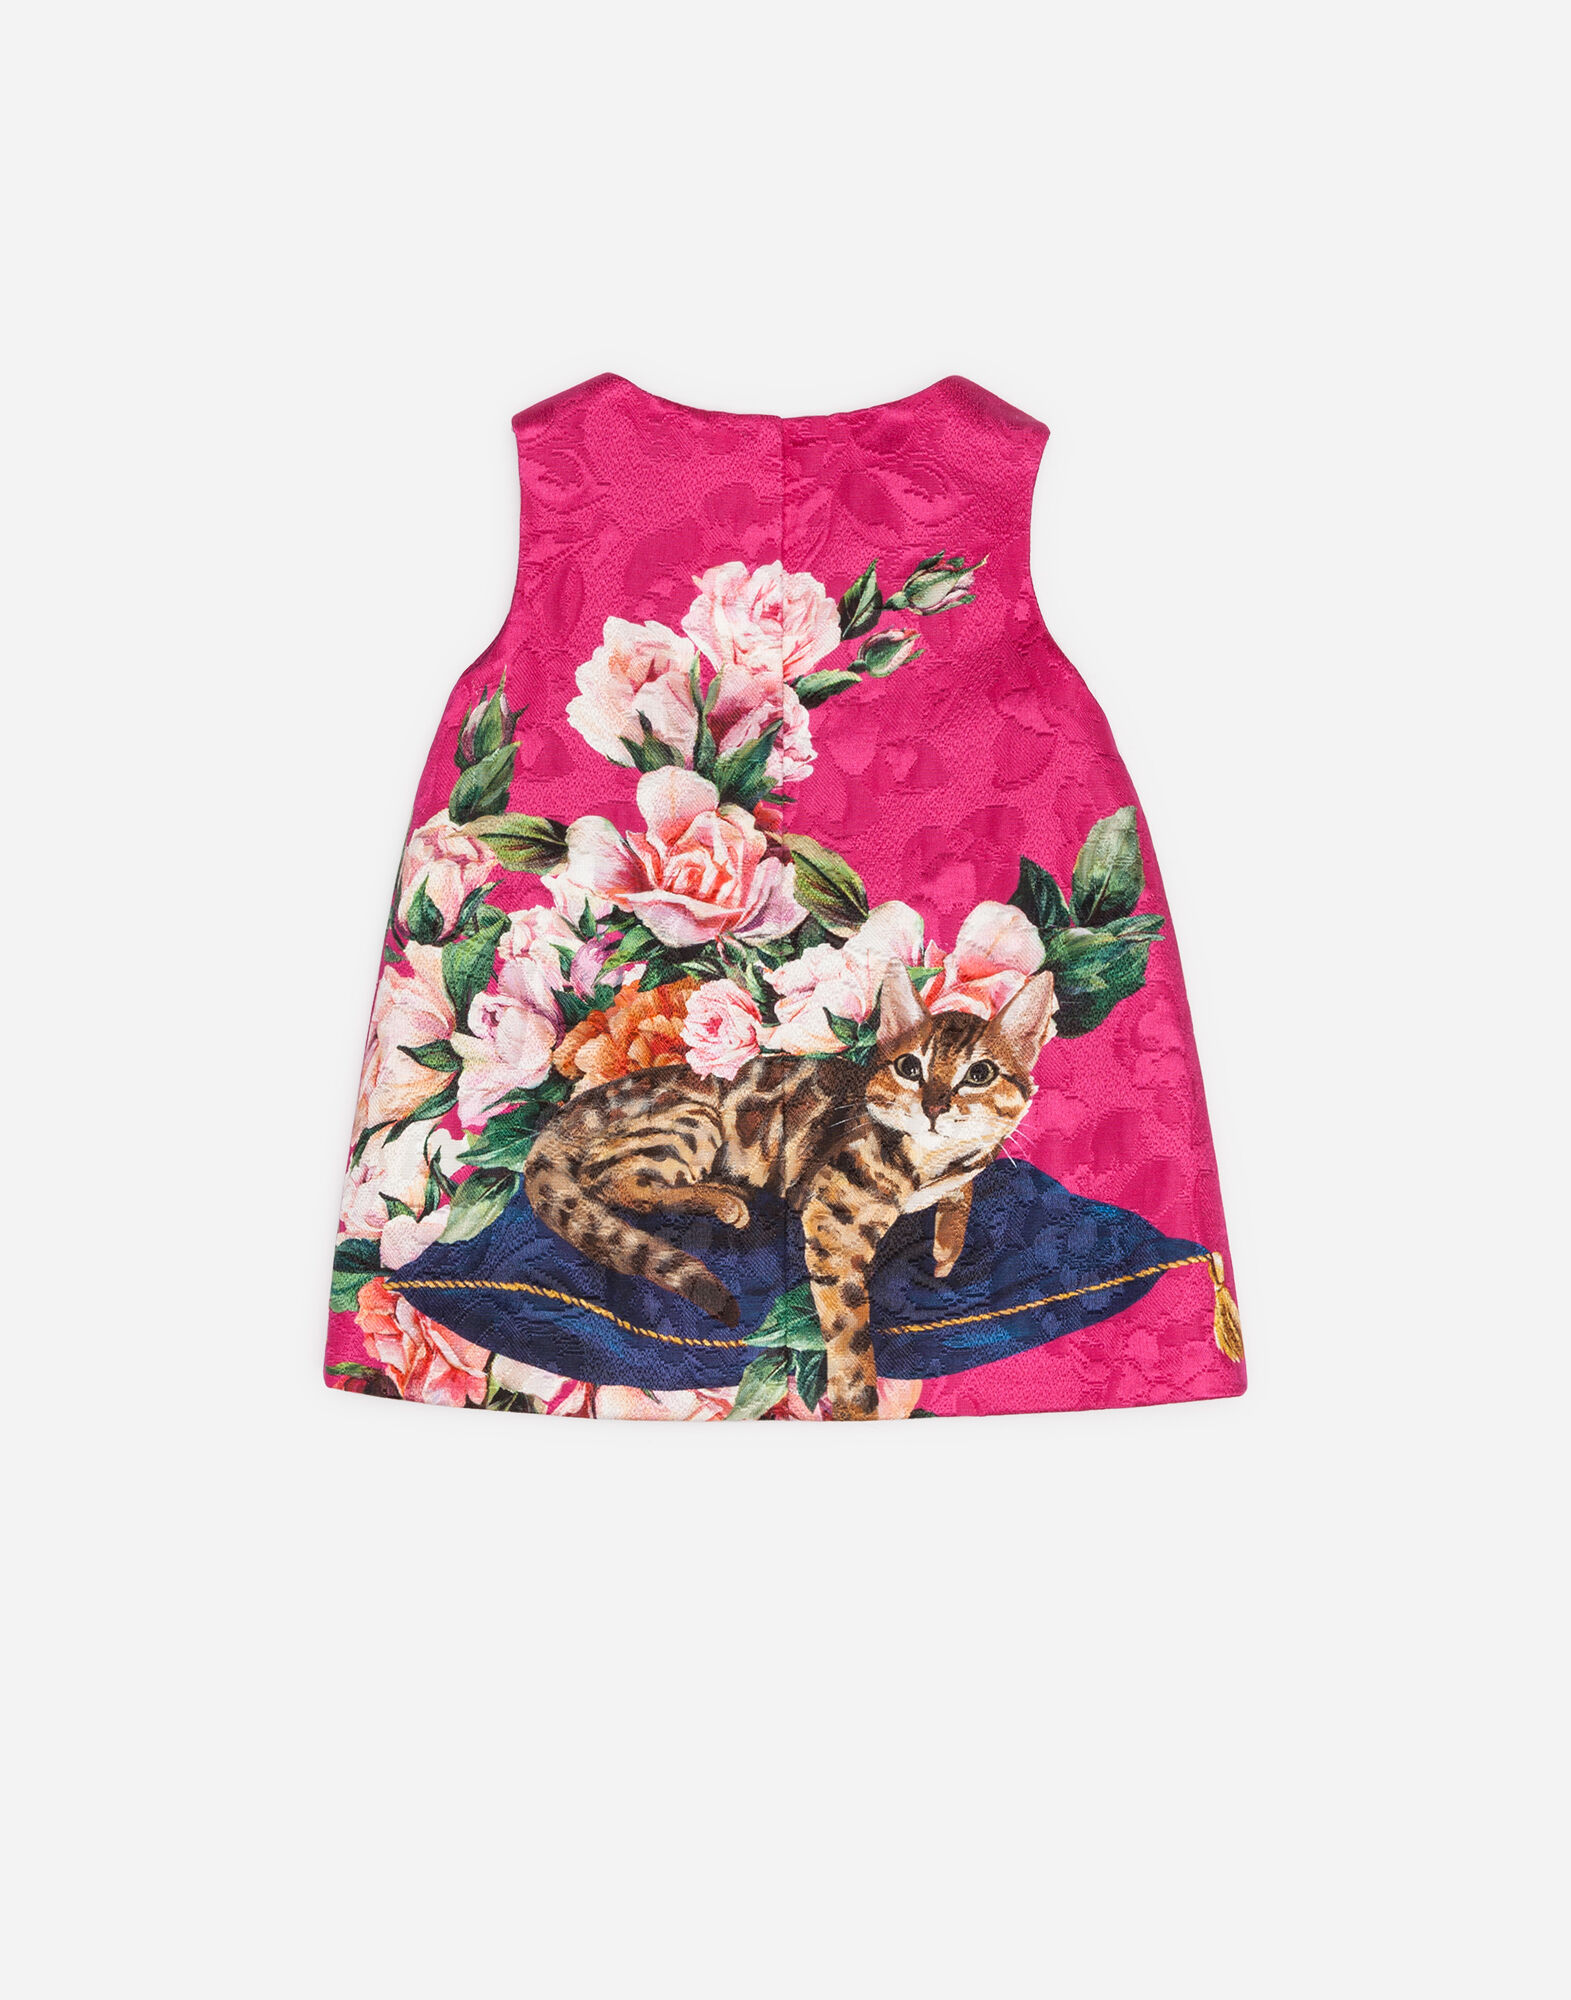 Dolce&Gabbana PRINTED BROCADE A-LINE DRESS WITH BLOOMERS